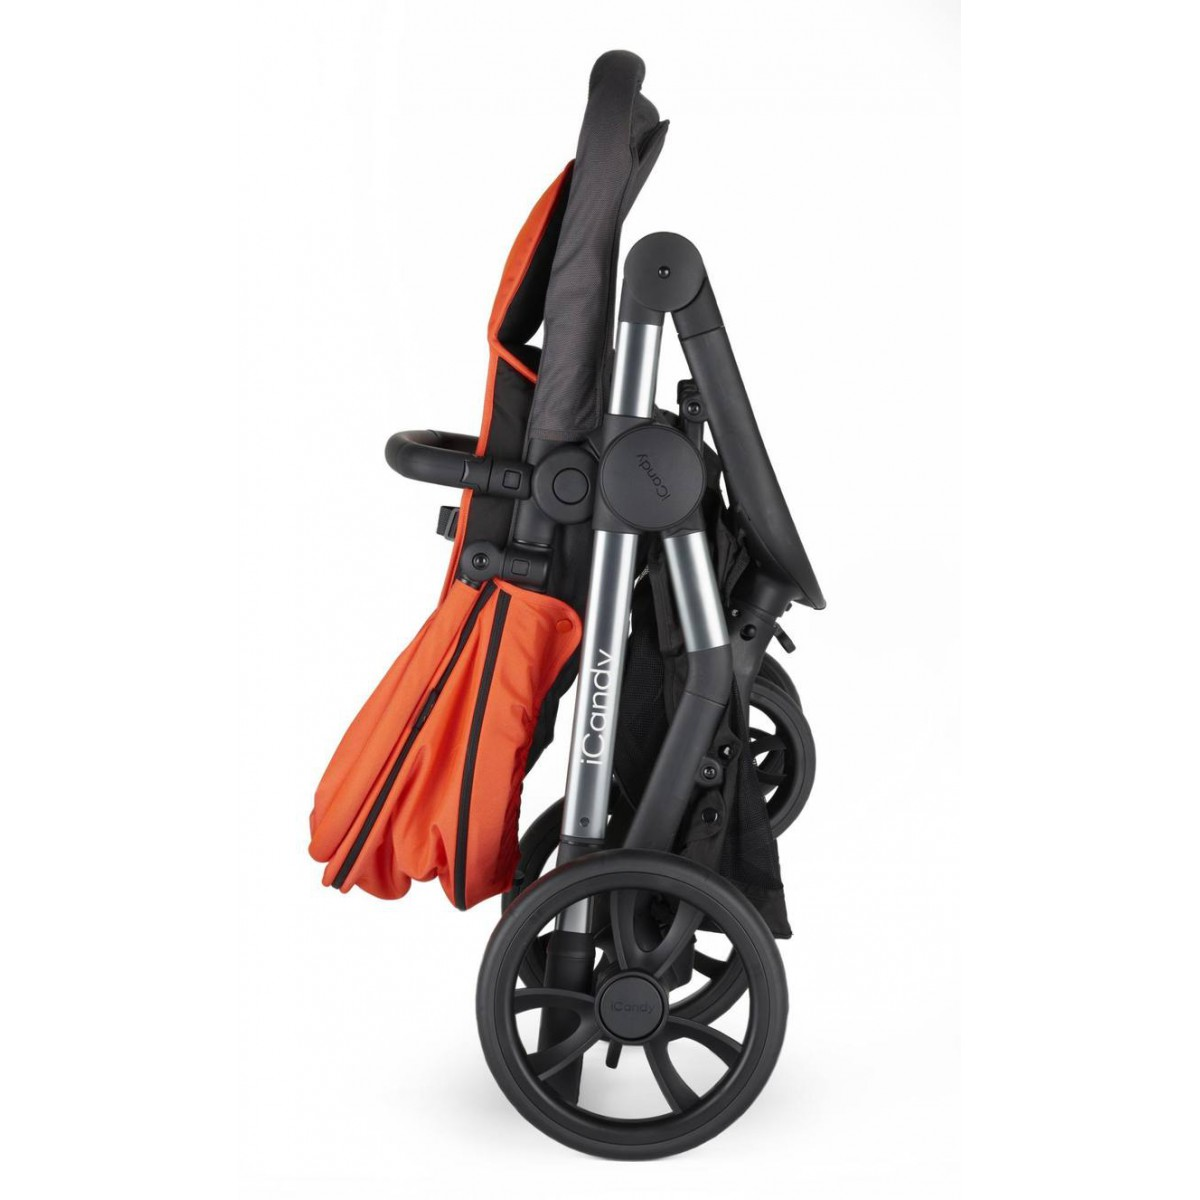 Pram Stroller Nz Icandy Orange Pram Double Buggy Built In Sibling Board